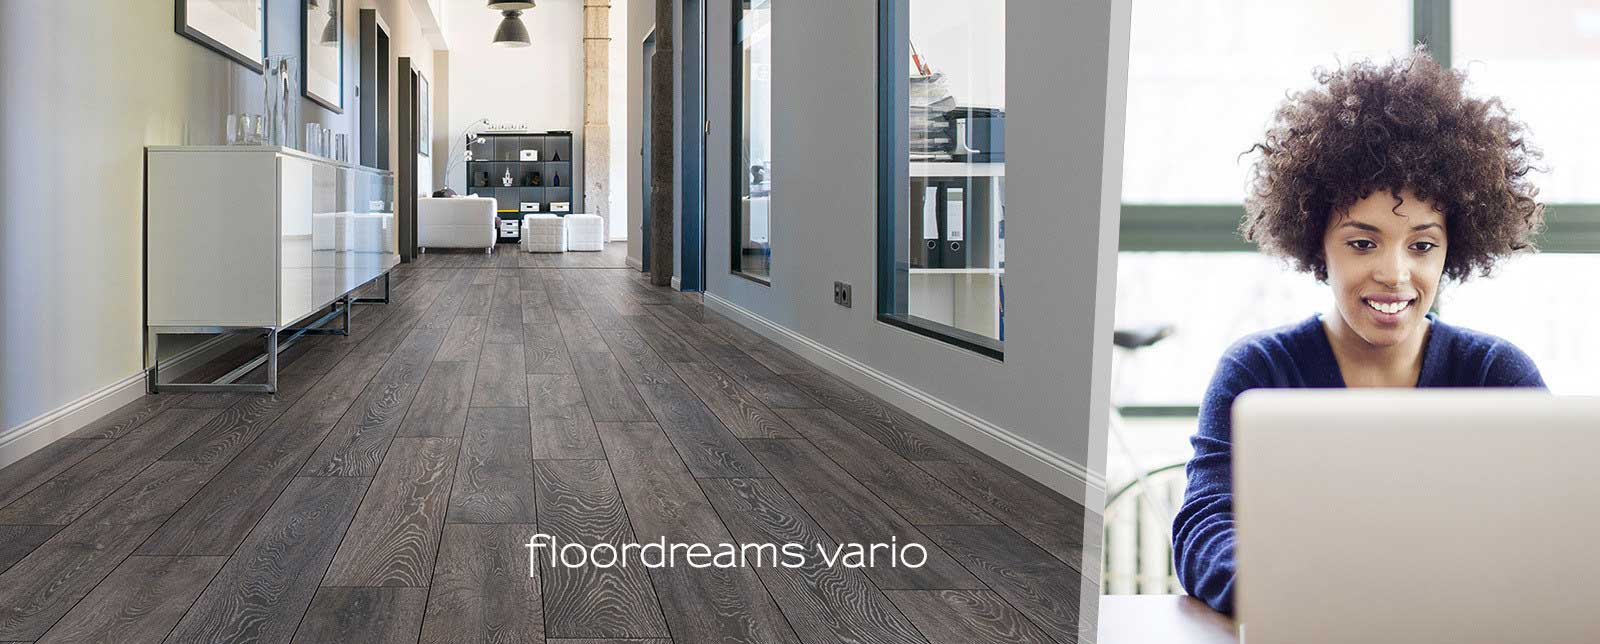 FLOORDREAMS VARIO ламинат